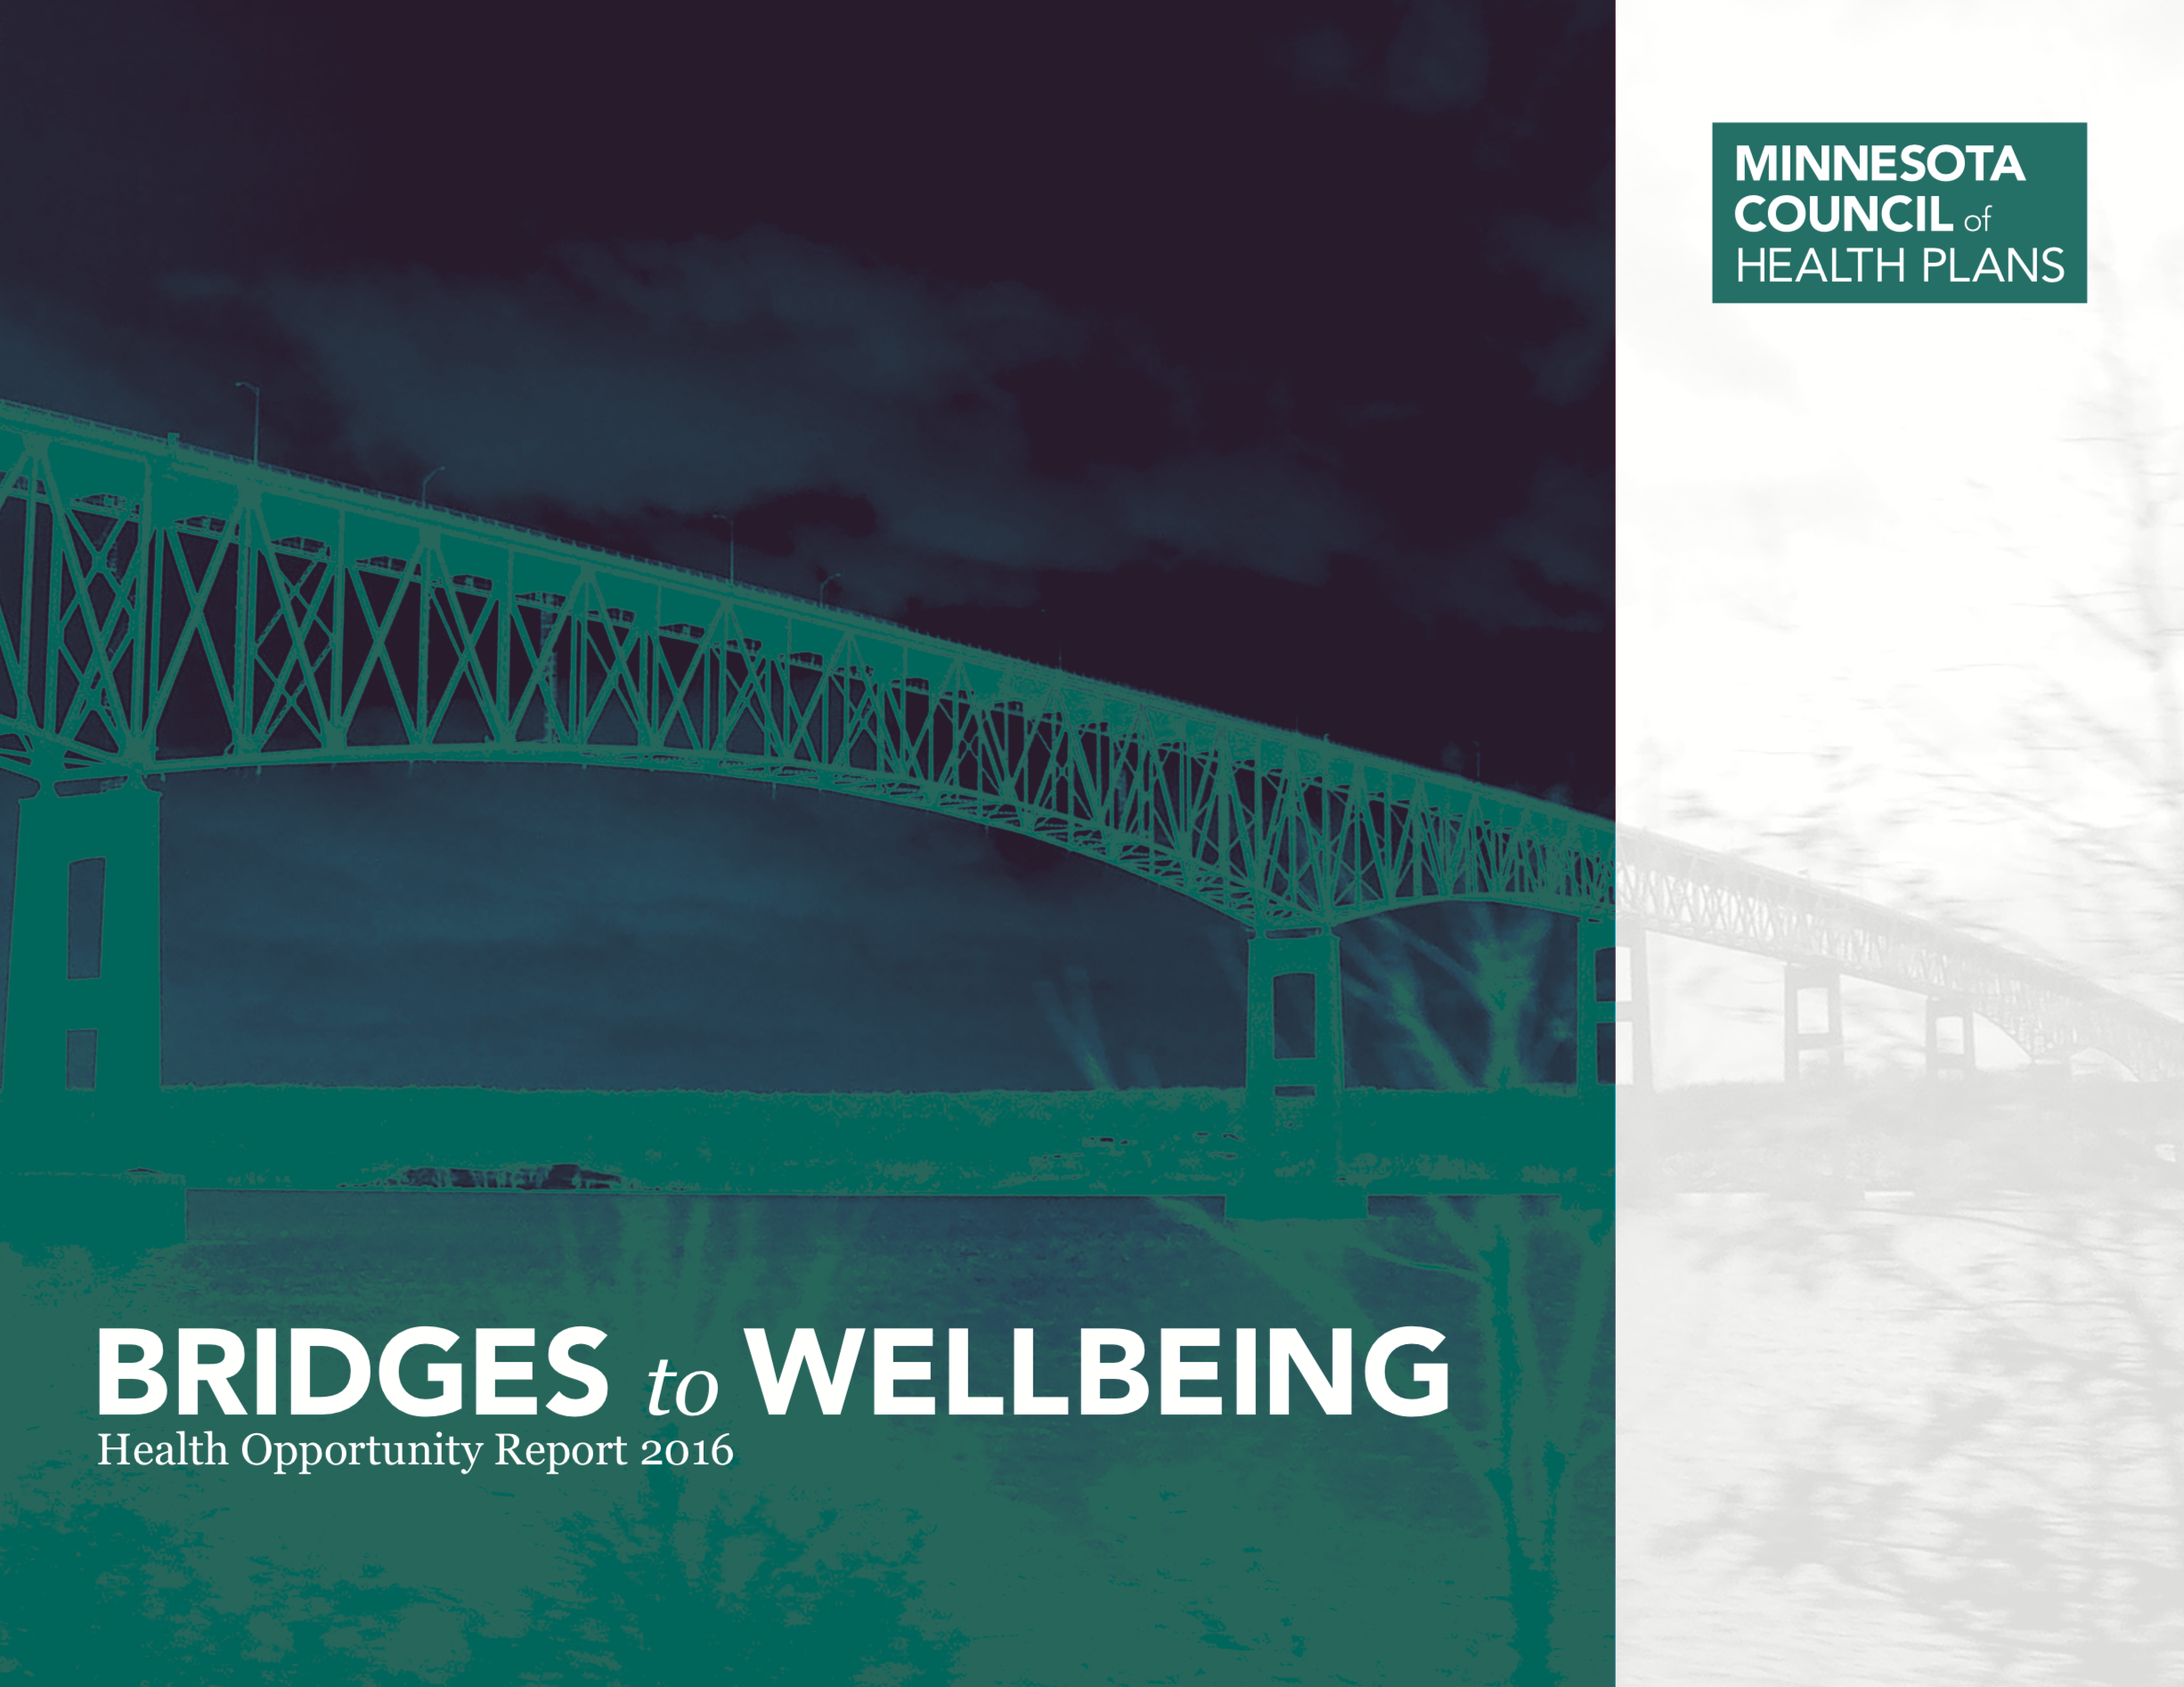 Minnesota Council of Health Plans ,  Bridges to Wellbeing: Health Opportunity Report 2016  ( PDF )